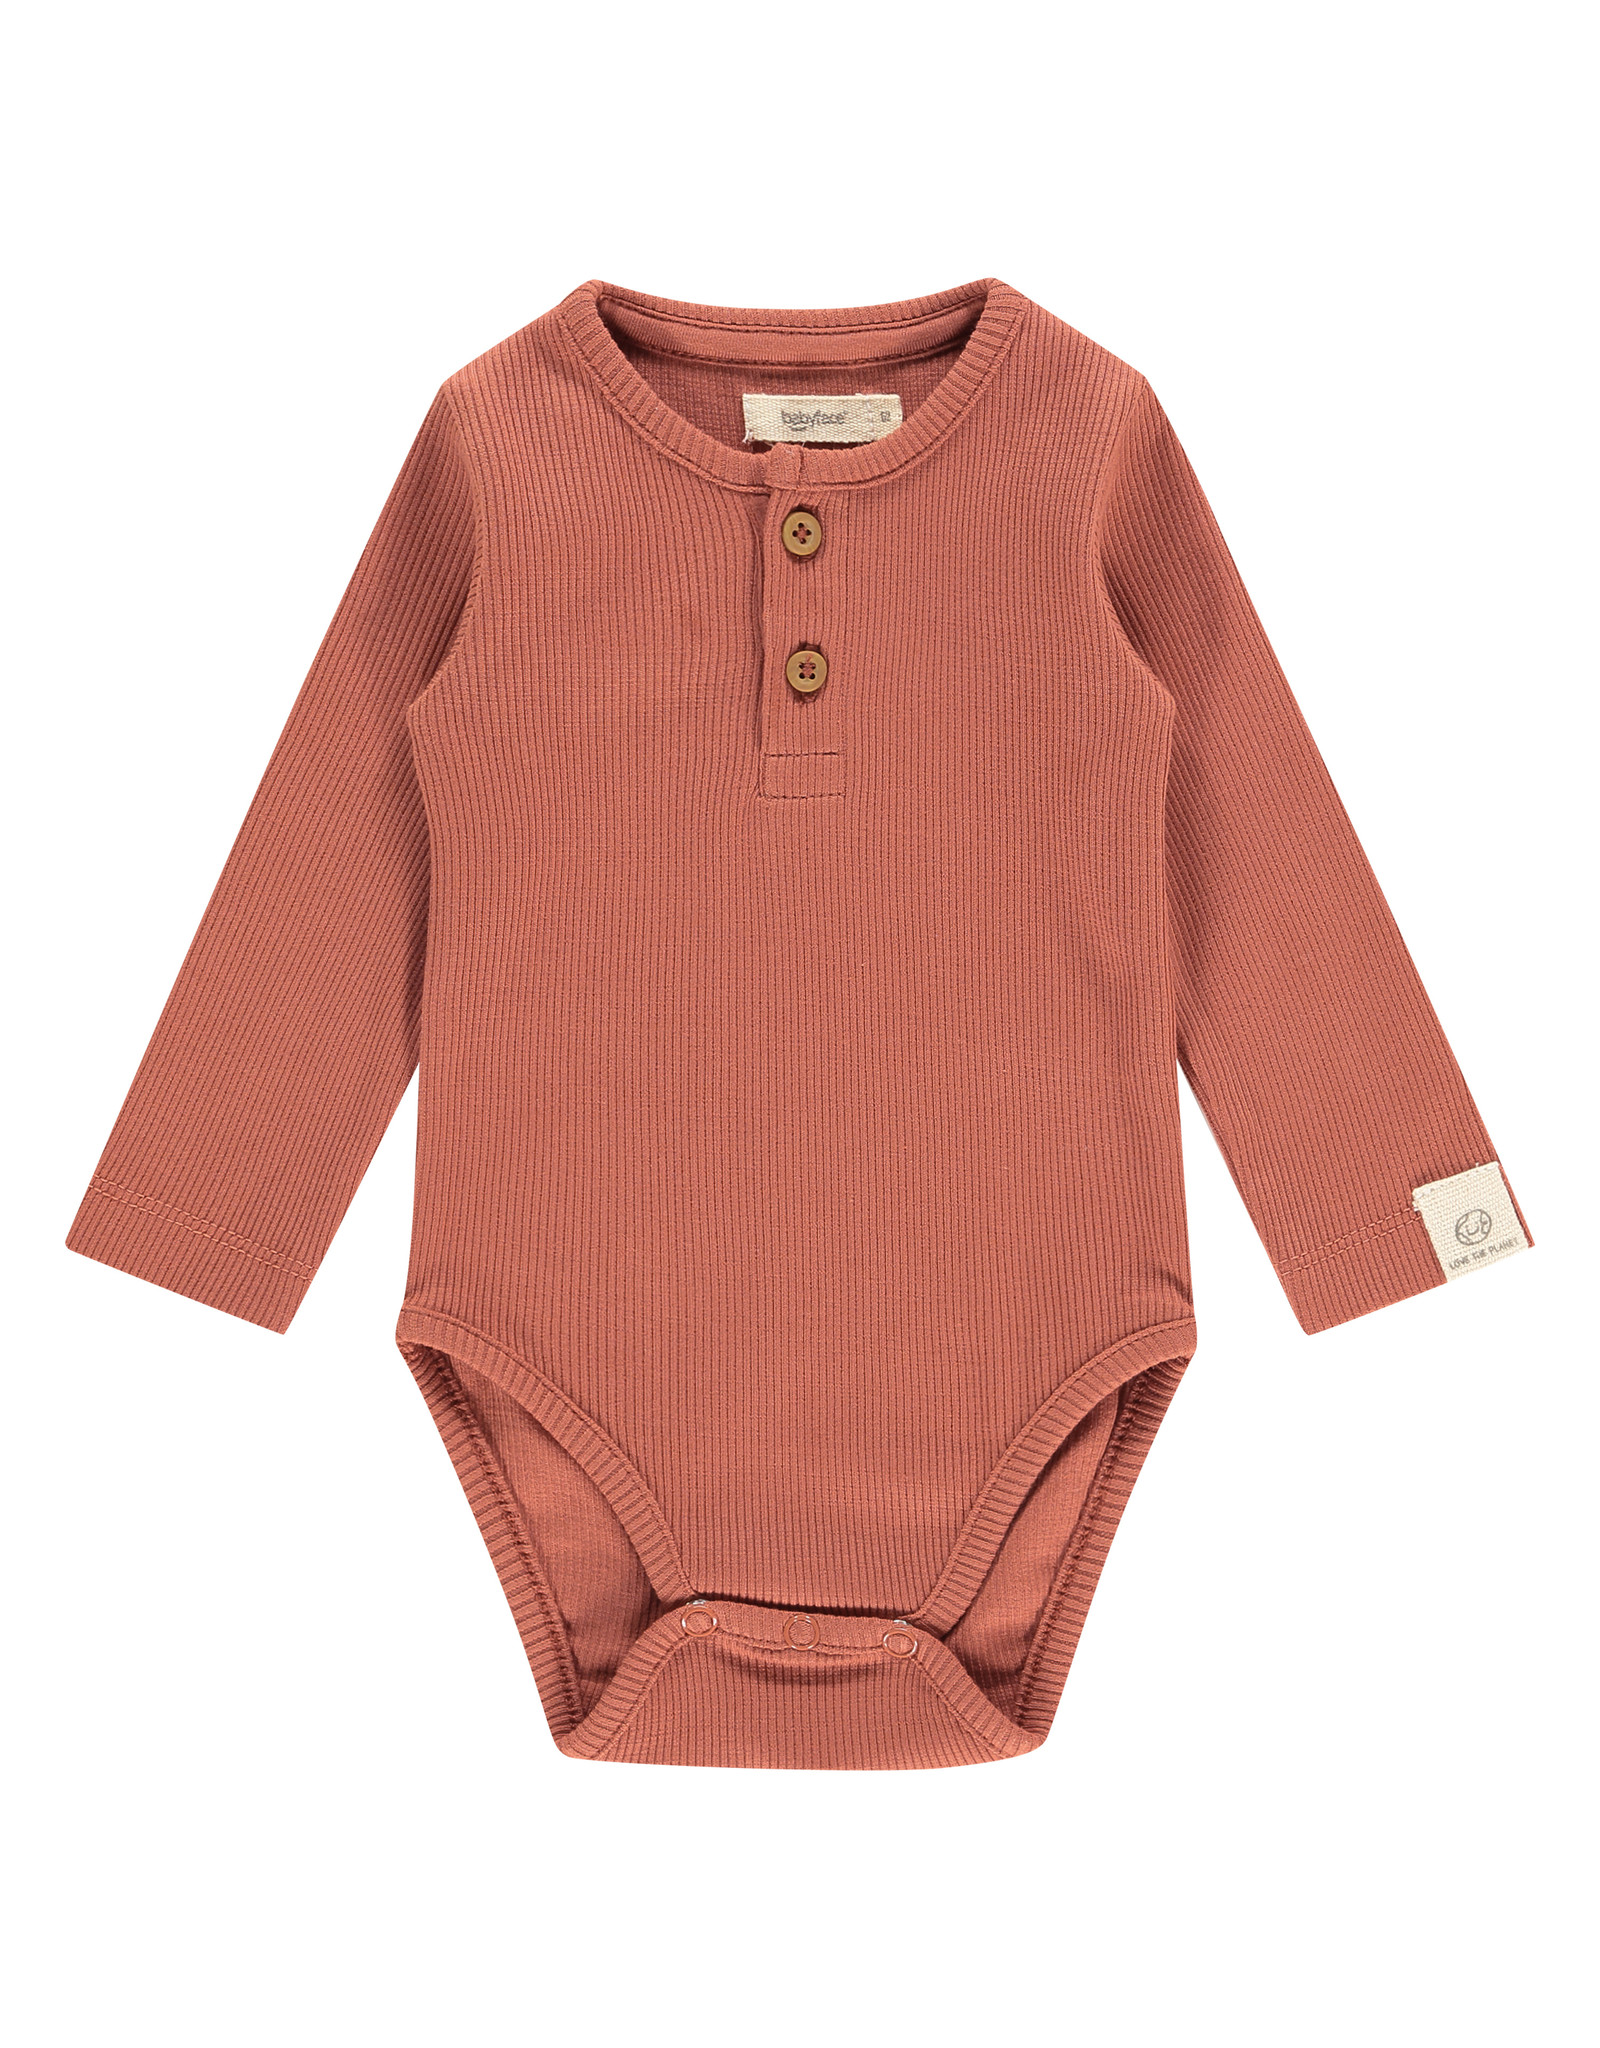 Babyface baby romper long sleeve, indian red